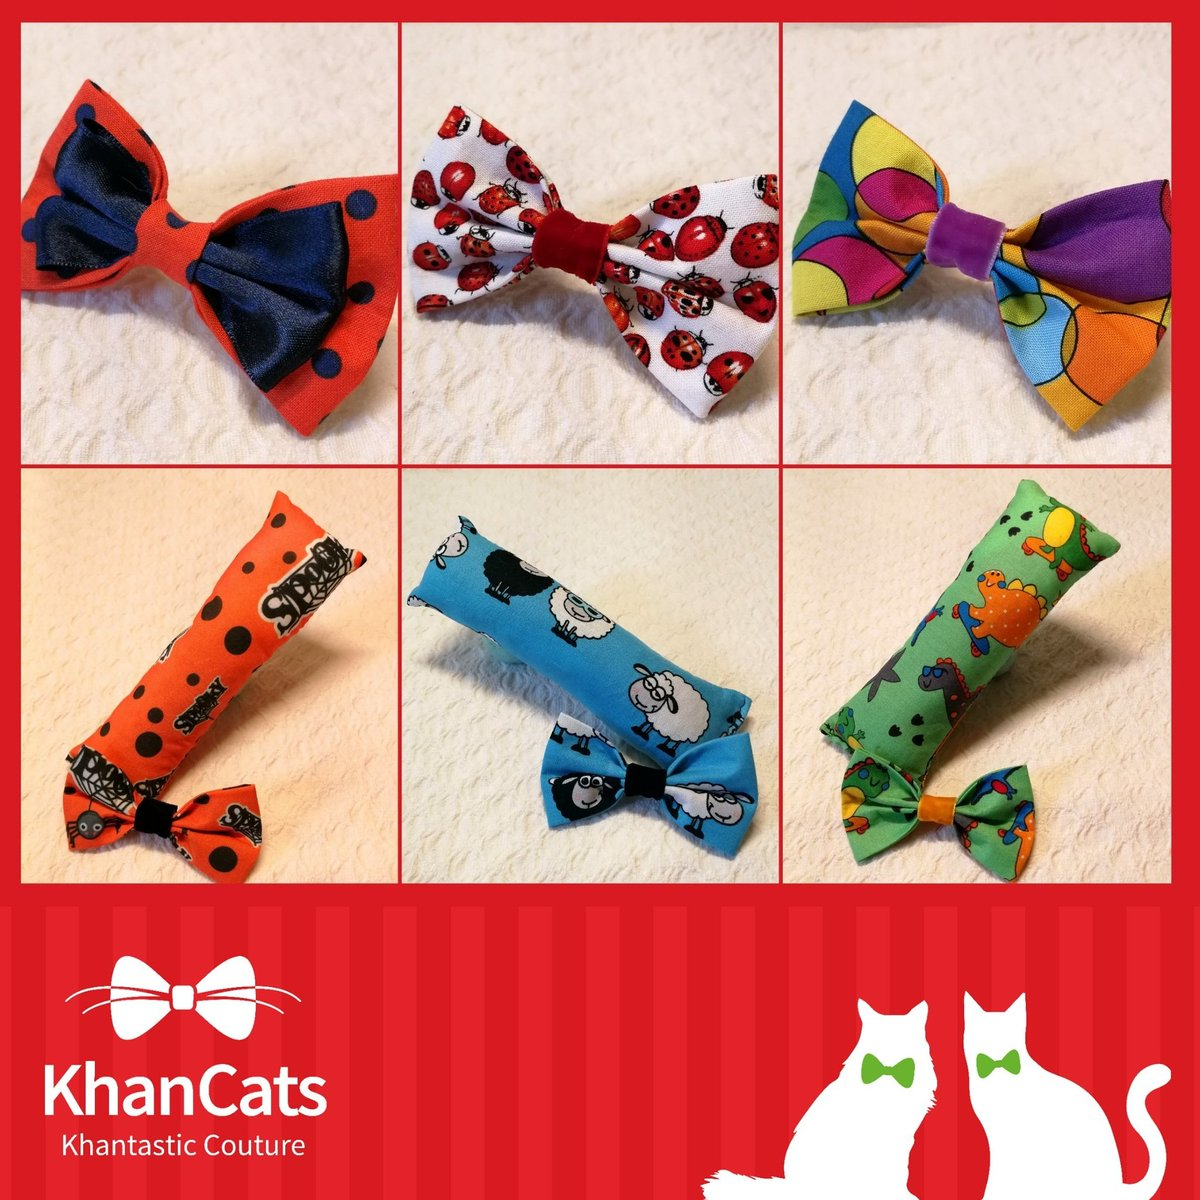 #AutumnIsComing &amp; we have new spooky, cheerful &amp; funny #bowties &amp; catnip toys in our KhanCats #etsy  http:// etsy.me/2hmrwHW  &nbsp;   #CatsOfTwitter <br>http://pic.twitter.com/KklyeeHEx0